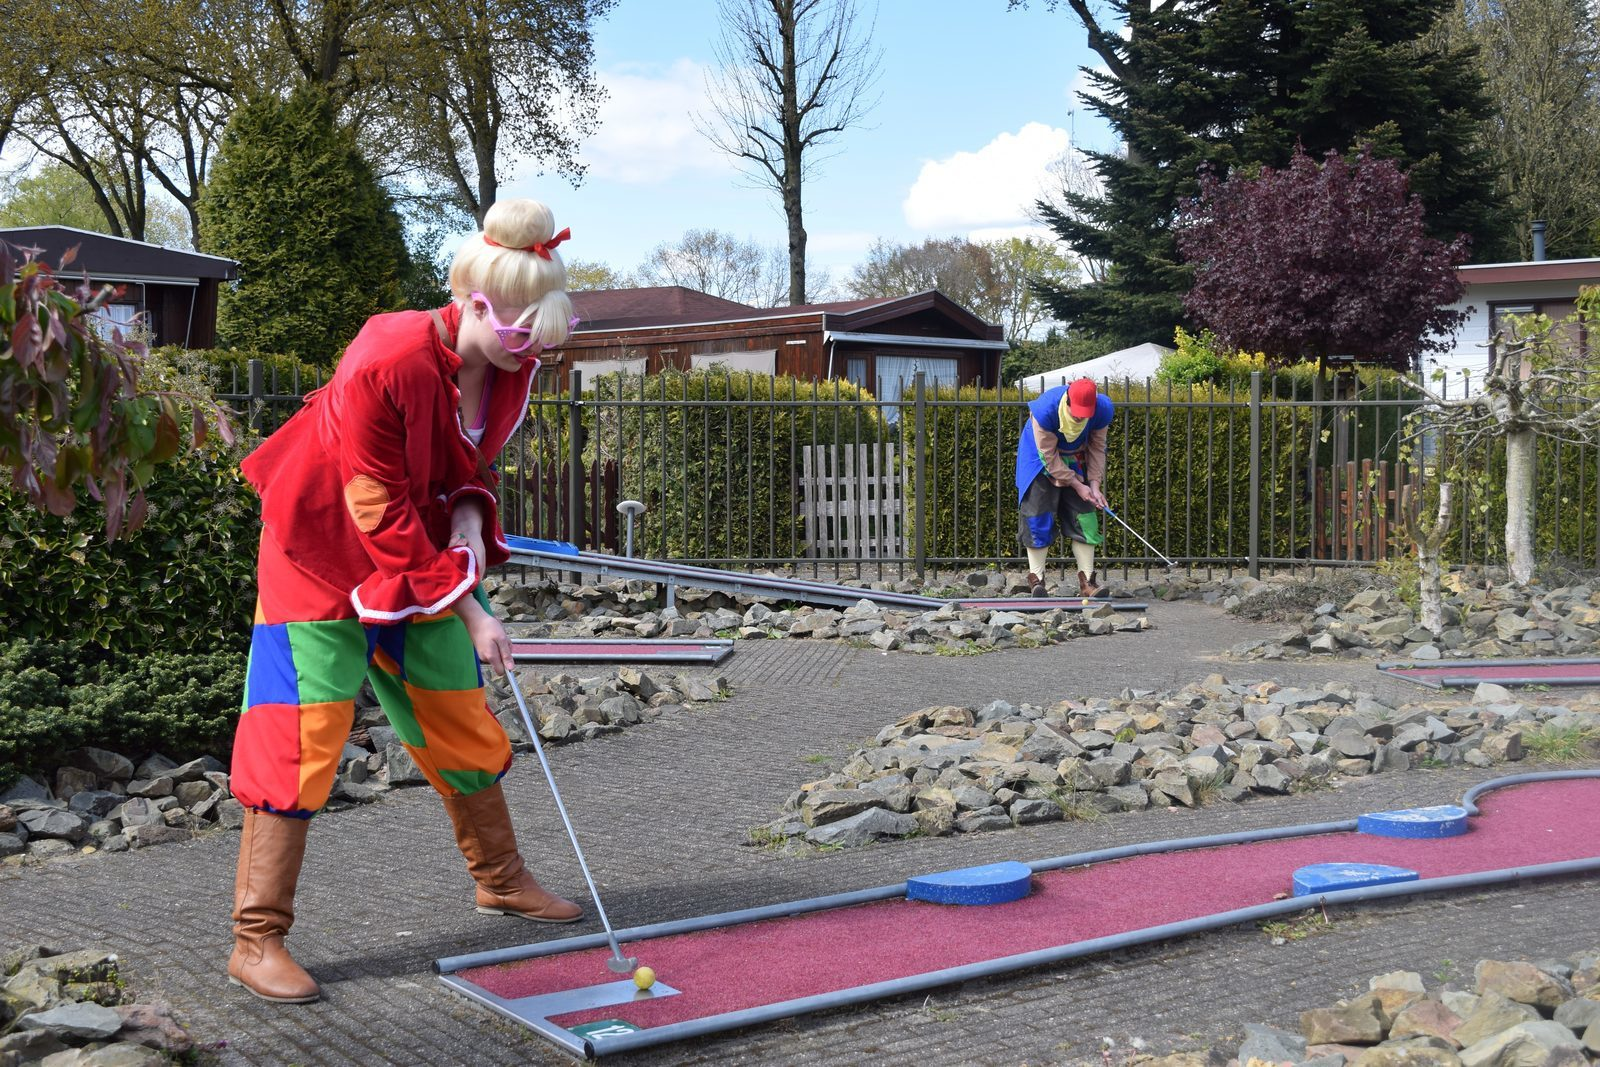 Keessie and Willie at the miniature golf course